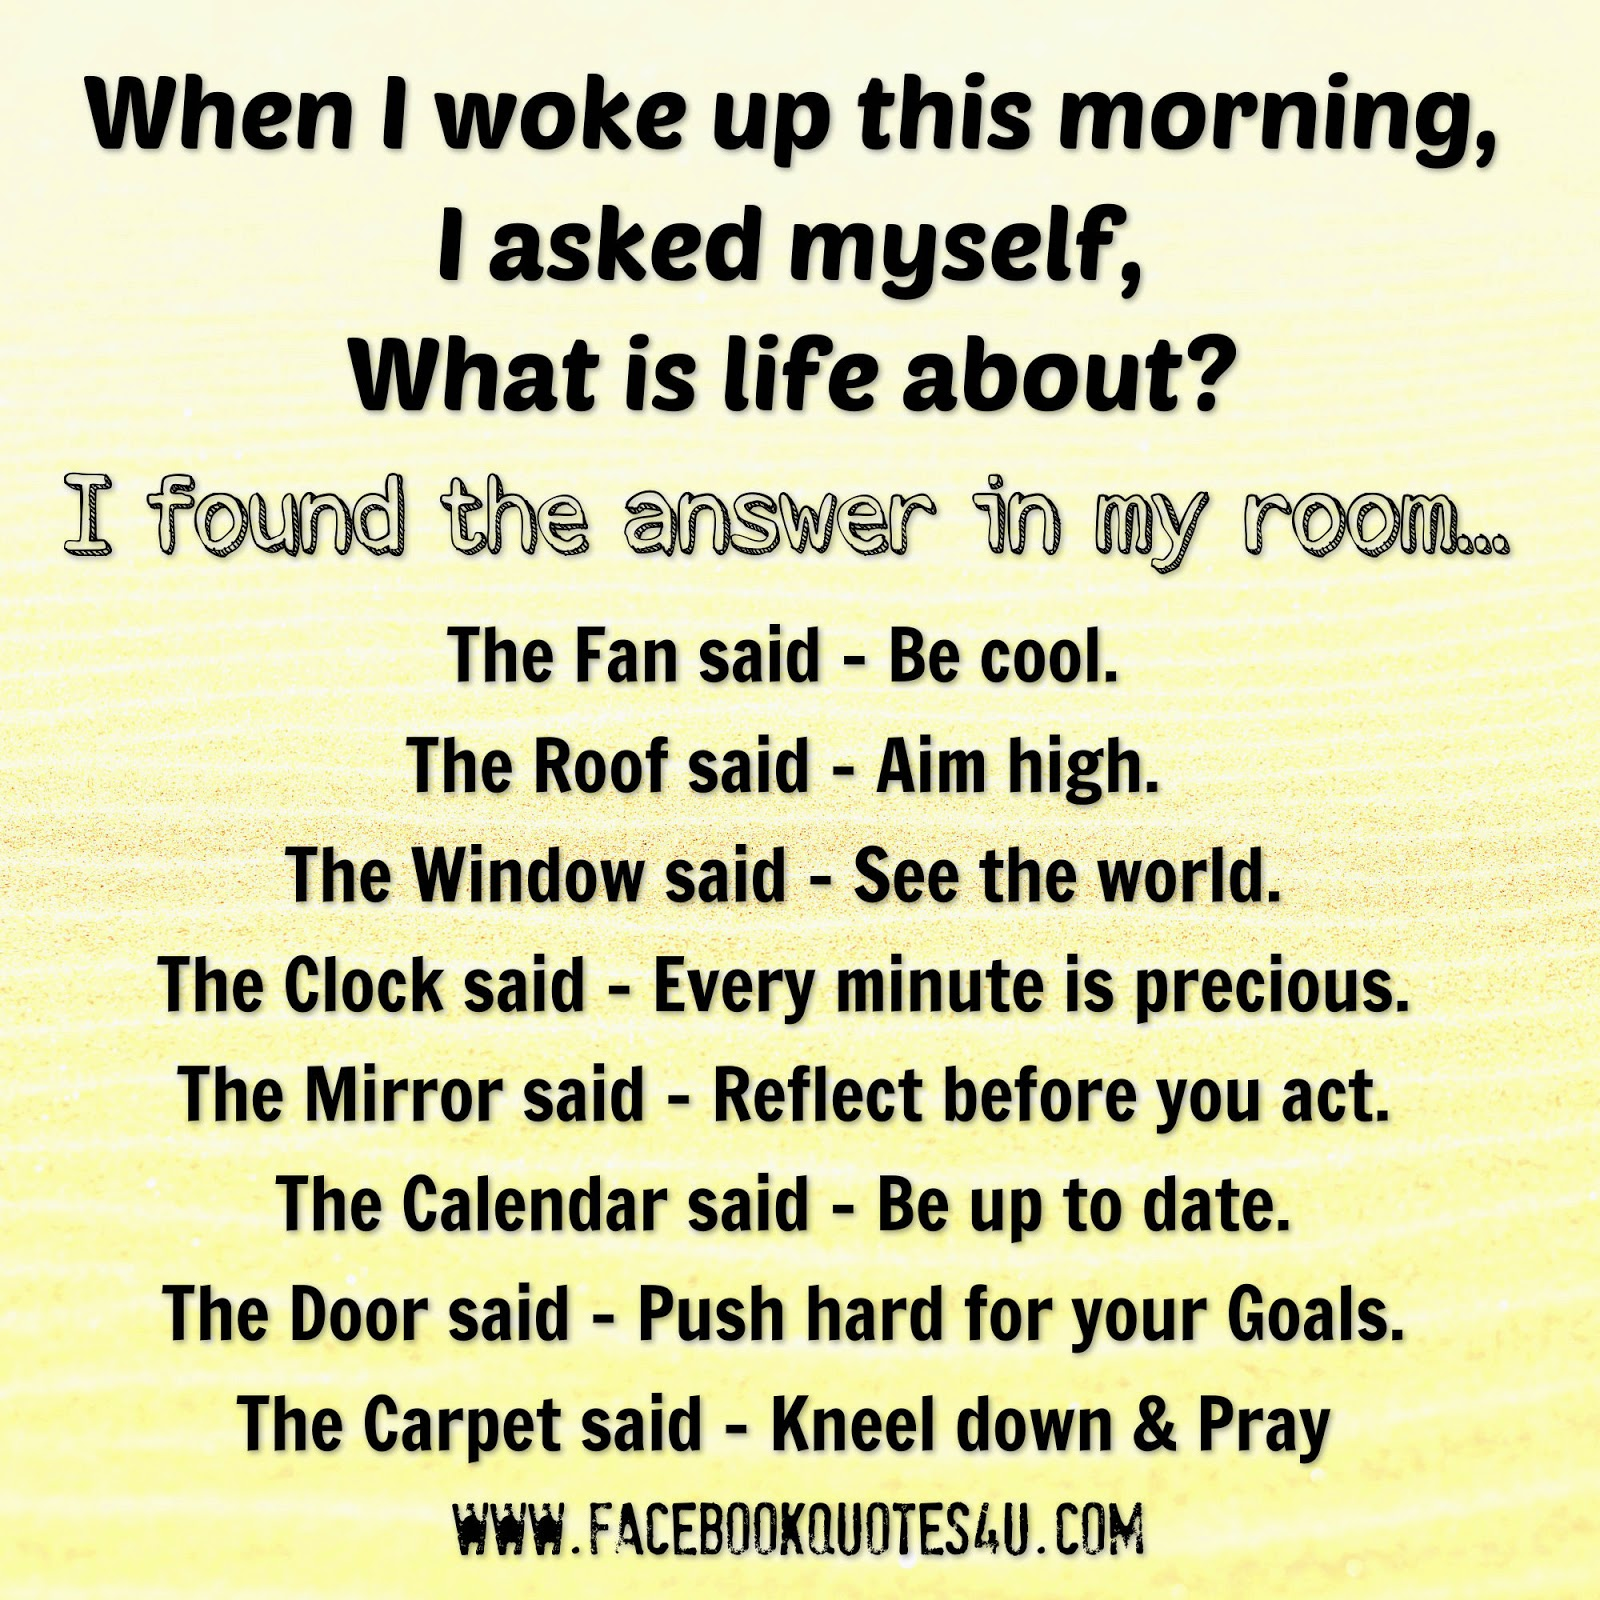 Life Is Precious Quotes Mesmerizing Quotes When I Woke Up This Morning I Asked Myself